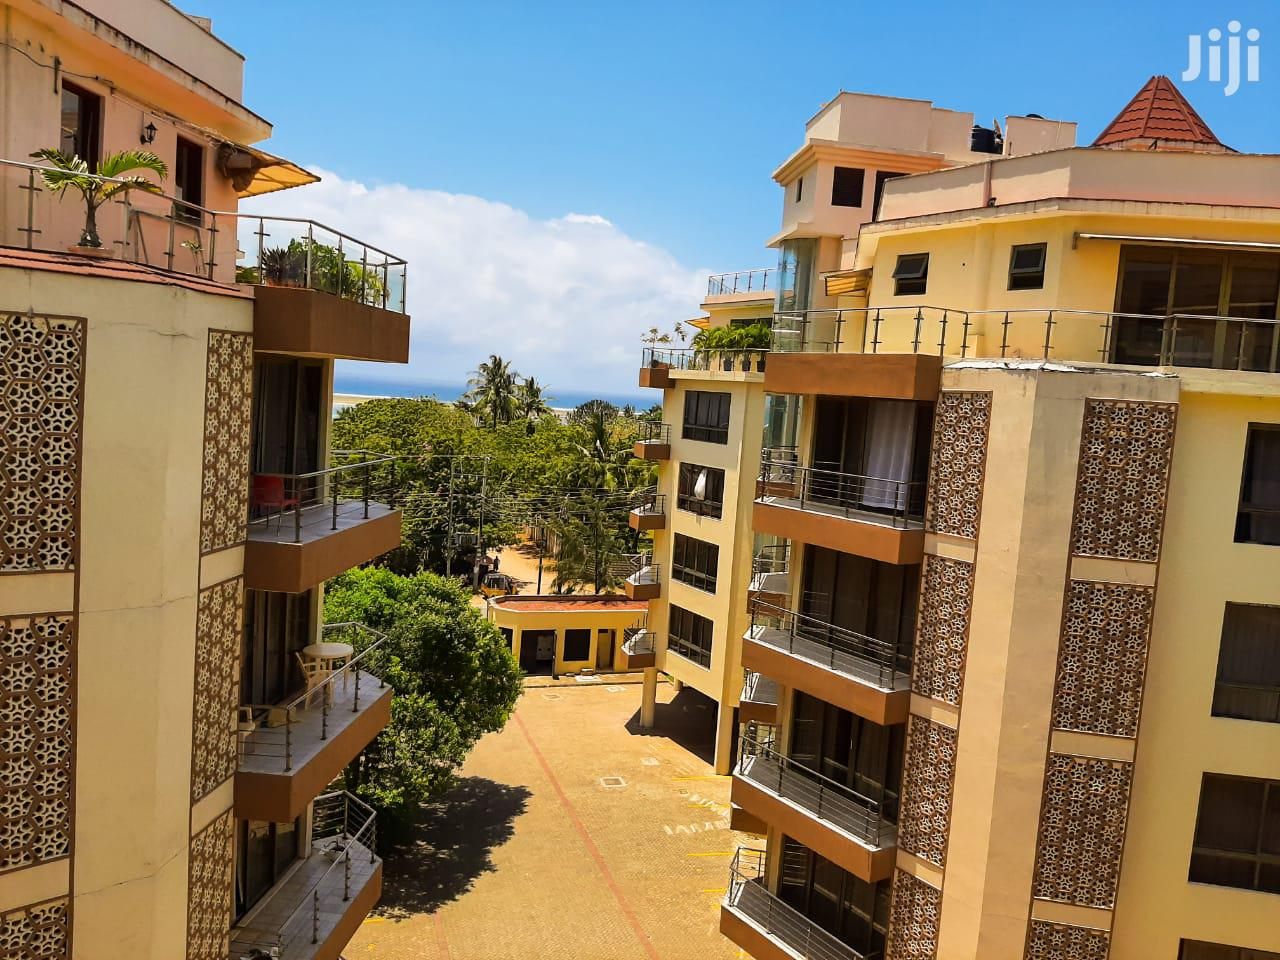 3 Bedroom Apartments With Sea View